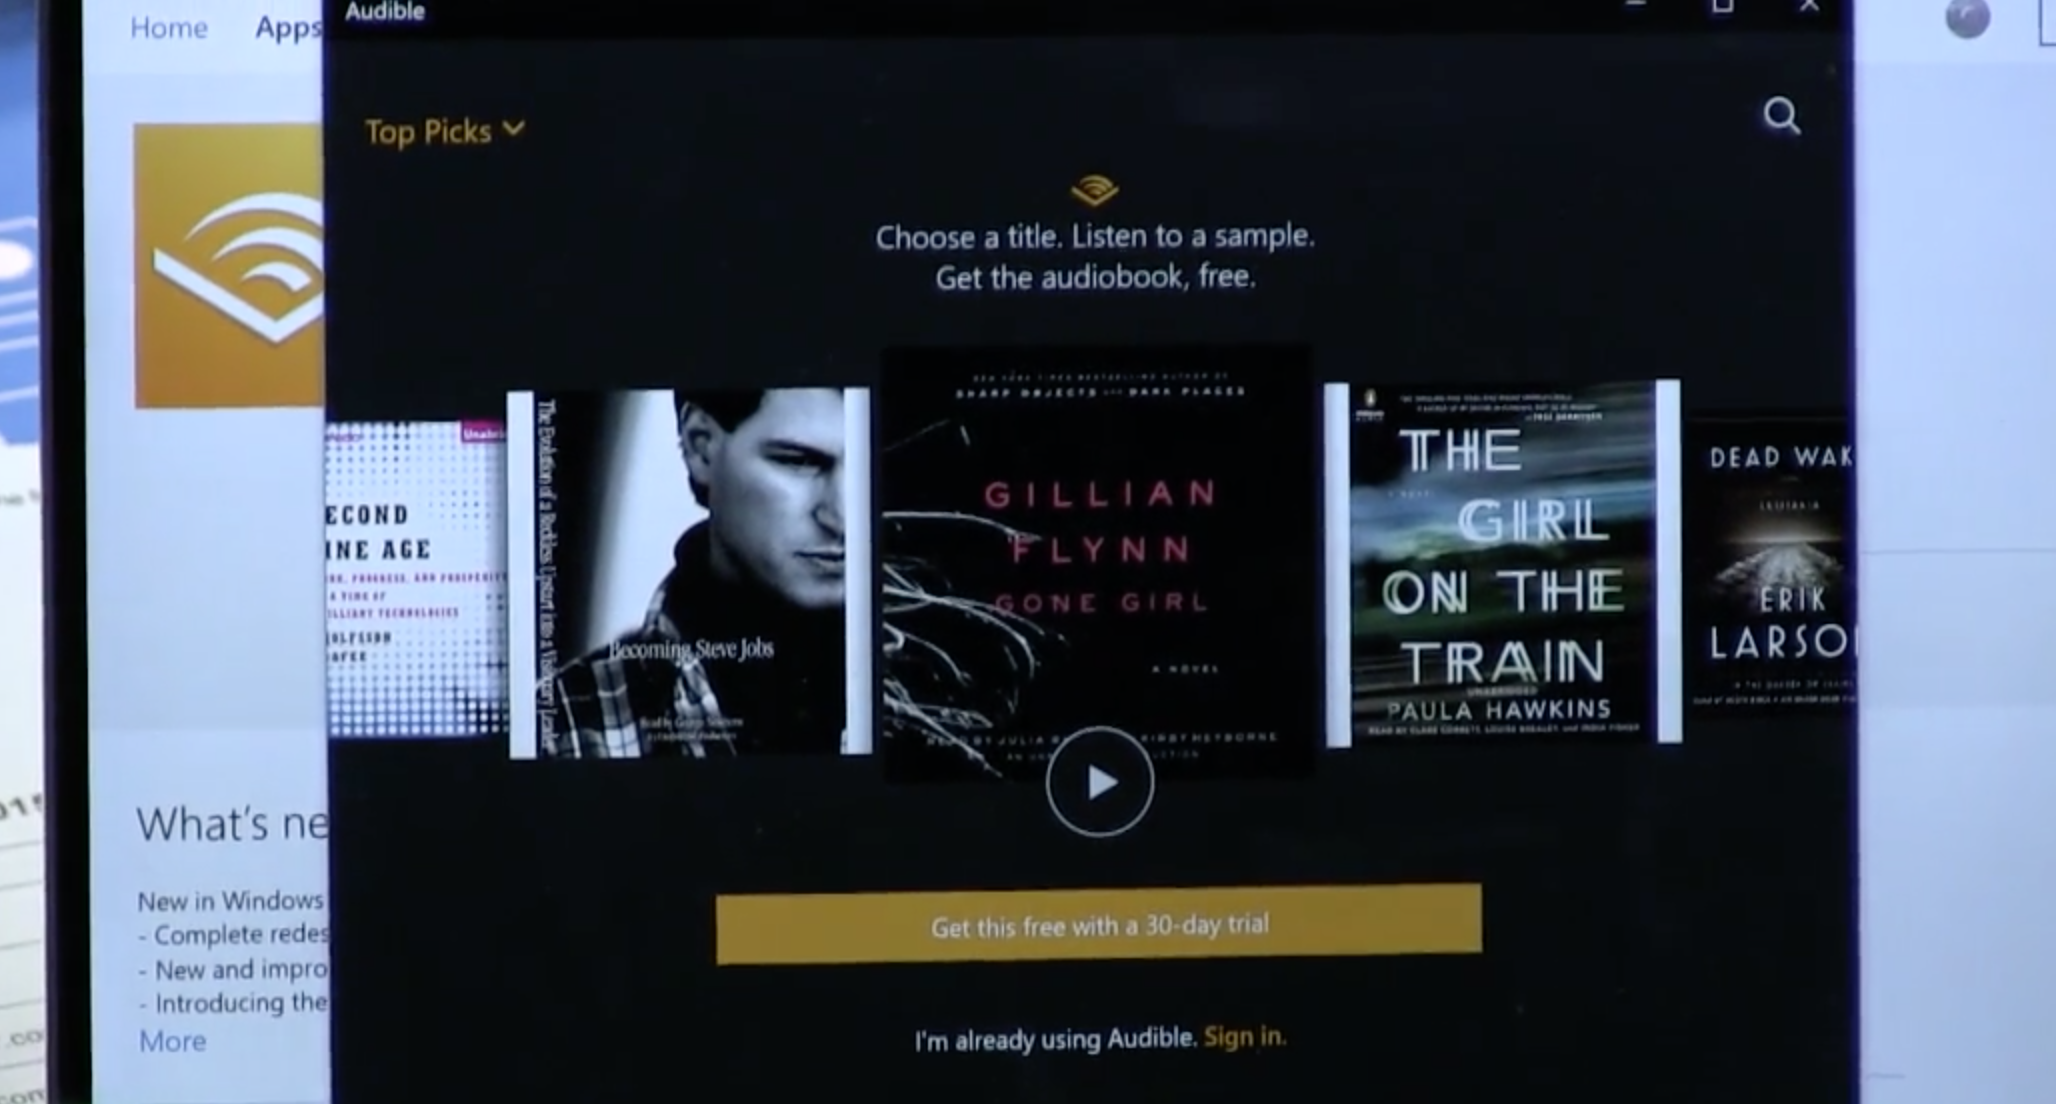 Audible for Windows 10